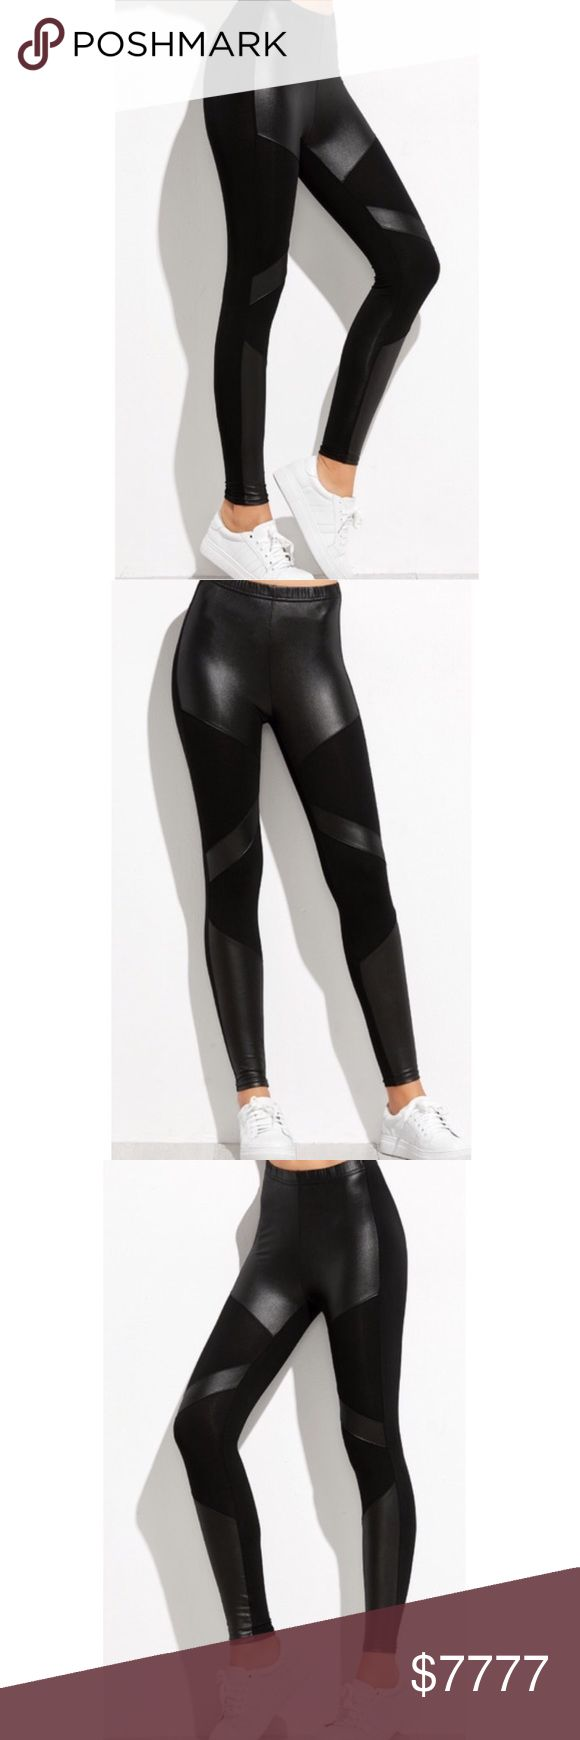 "..........BLACK CONTRAST LEGGINGS Waist 21""-34.5"" Length 33.5"" Hip 25.5""-33.5"" Thigh 15.5""-23.5""  Wow! These contrast leggings will add a slight edge to your wardrobe. Buy a pair for you and your girlfriend. -No trades pls 51Twenty Pants Leggings"